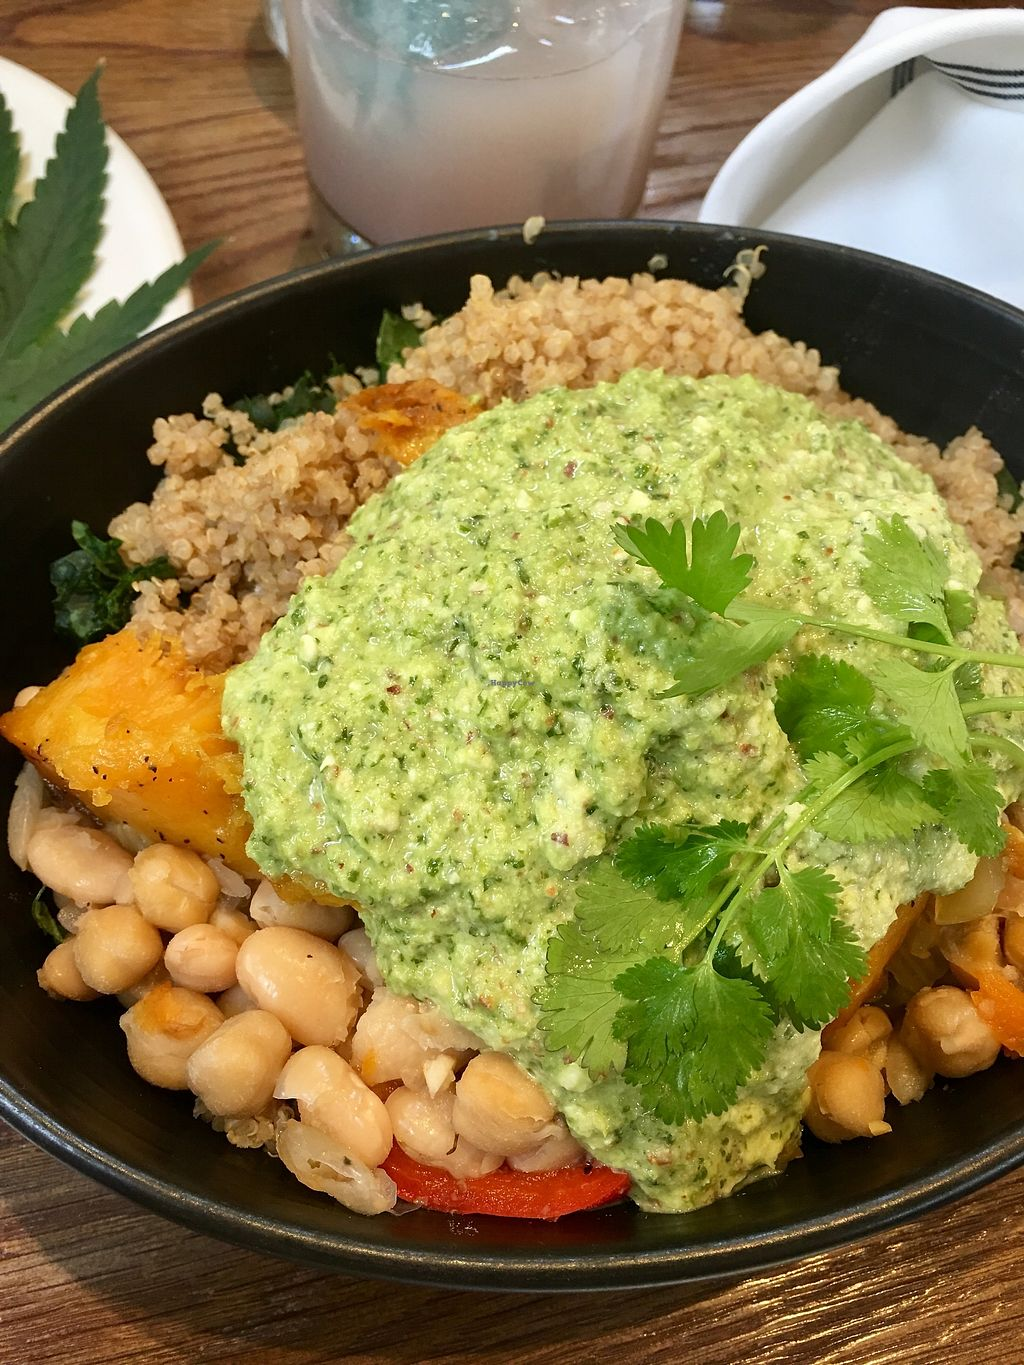 "Photo of Gracias Madre - WeHo  by <a href=""/members/profile/thejonblake"">thejonblake</a> <br/>The tres bowl - quinoa, kale, roasted squash, pesto cashew crème, white beans, peppers and onions. Delicious! <br/> June 20, 2017  - <a href='/contact/abuse/image/44780/271438'>Report</a>"